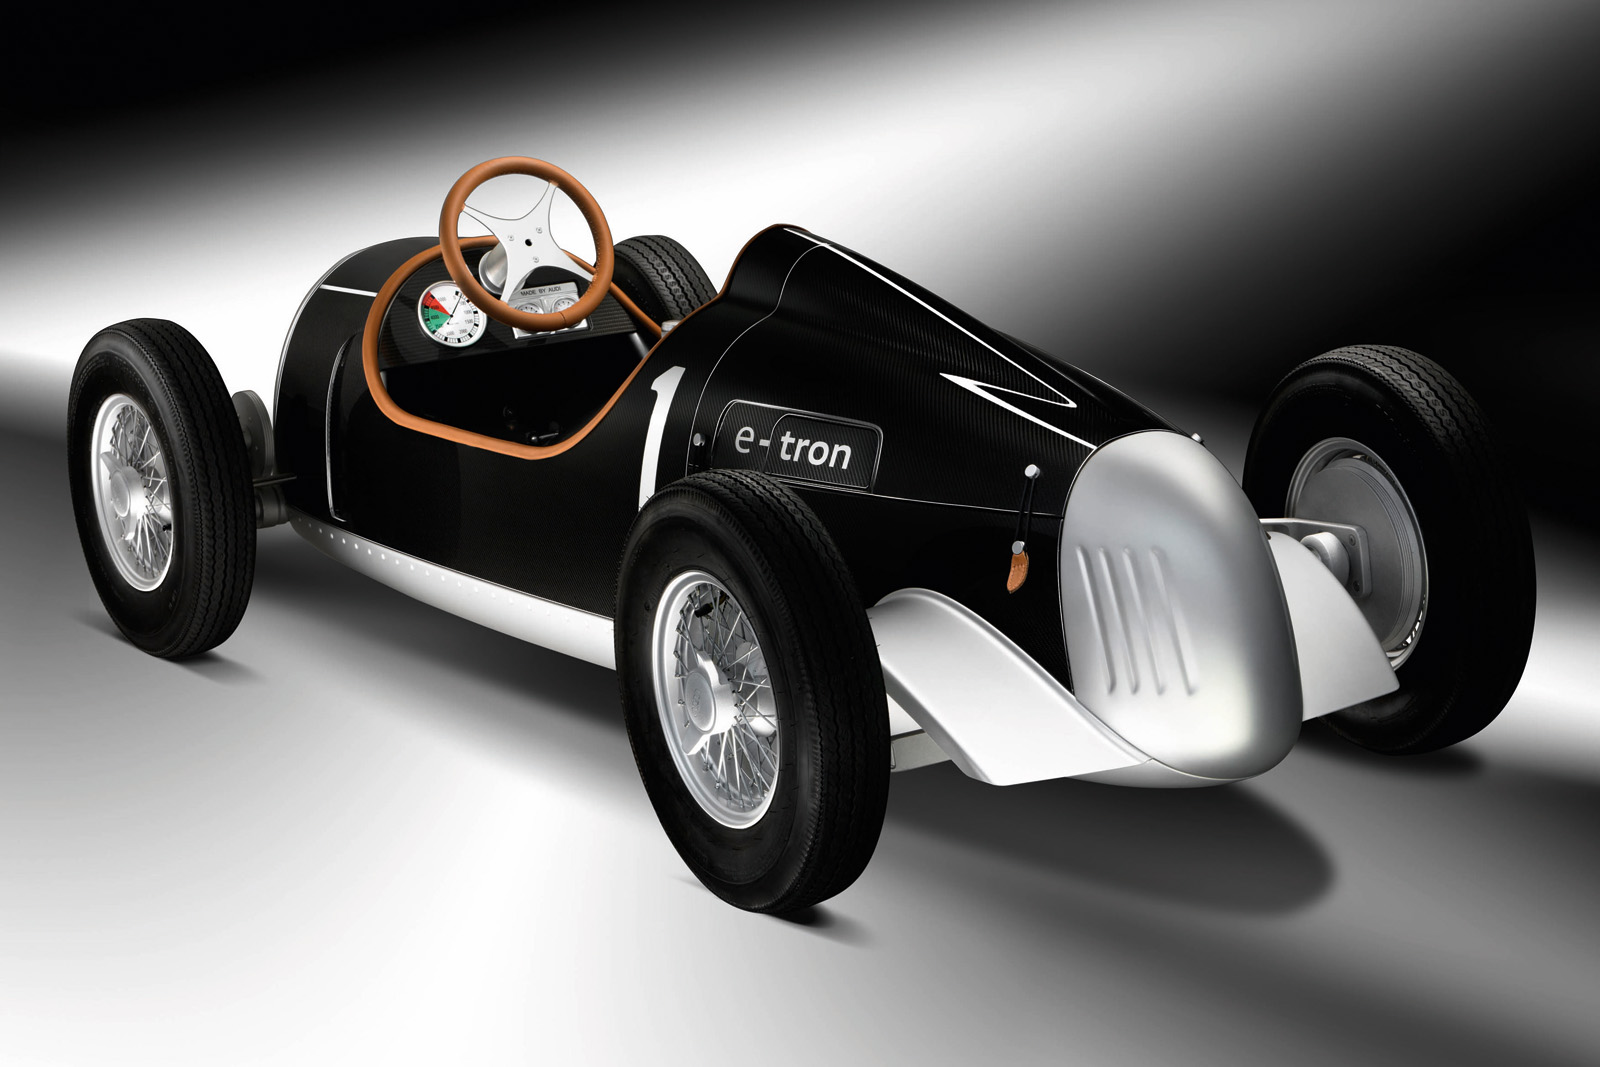 1295608930_audi2be-tron2bscale2bmodel2b2 Масштабная игрушка от Audi – Auto Union Type C e-tron!